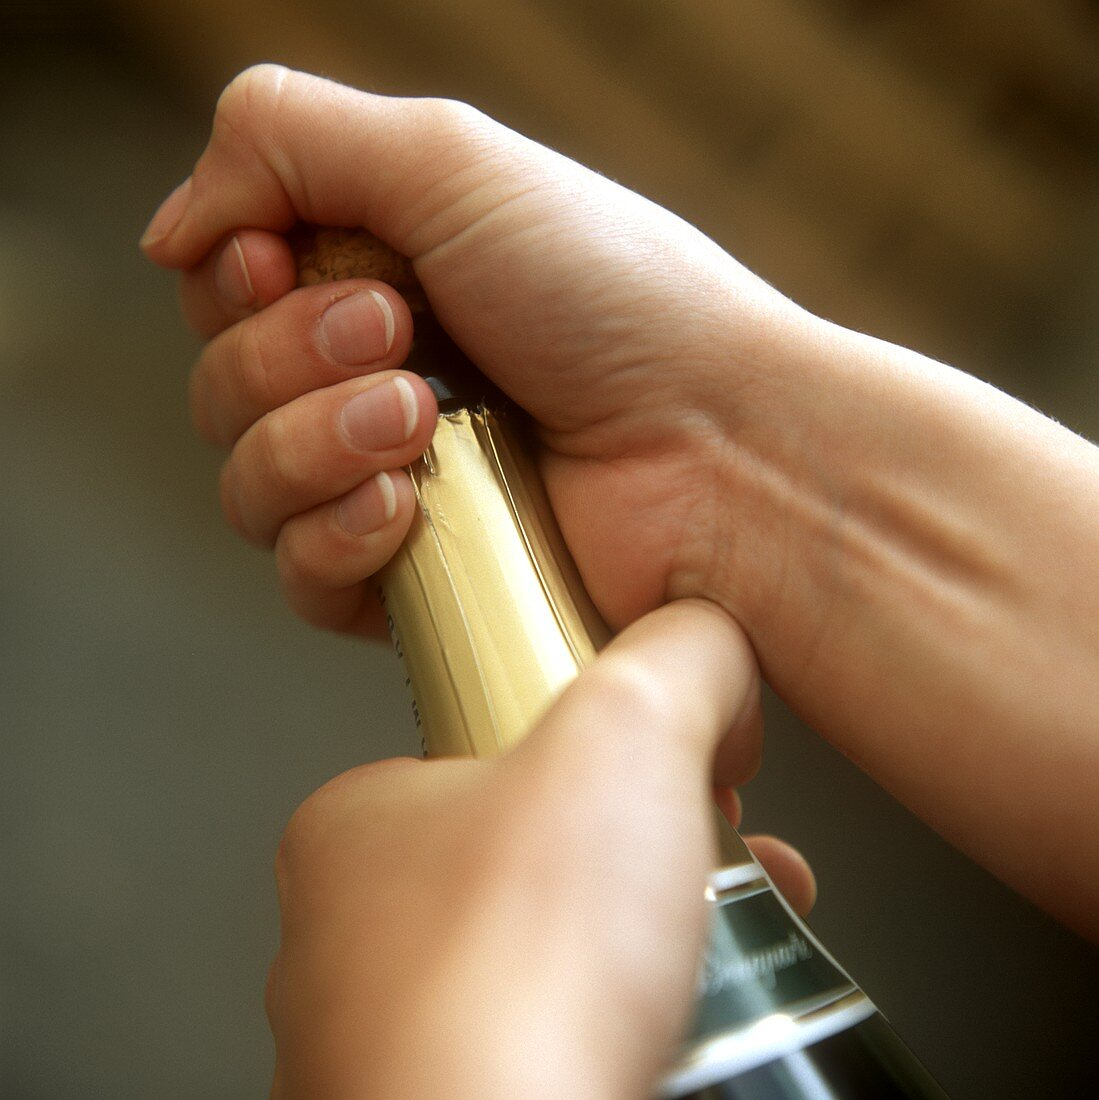 Opening sparkling wine bottle: holding cork firmly in hand